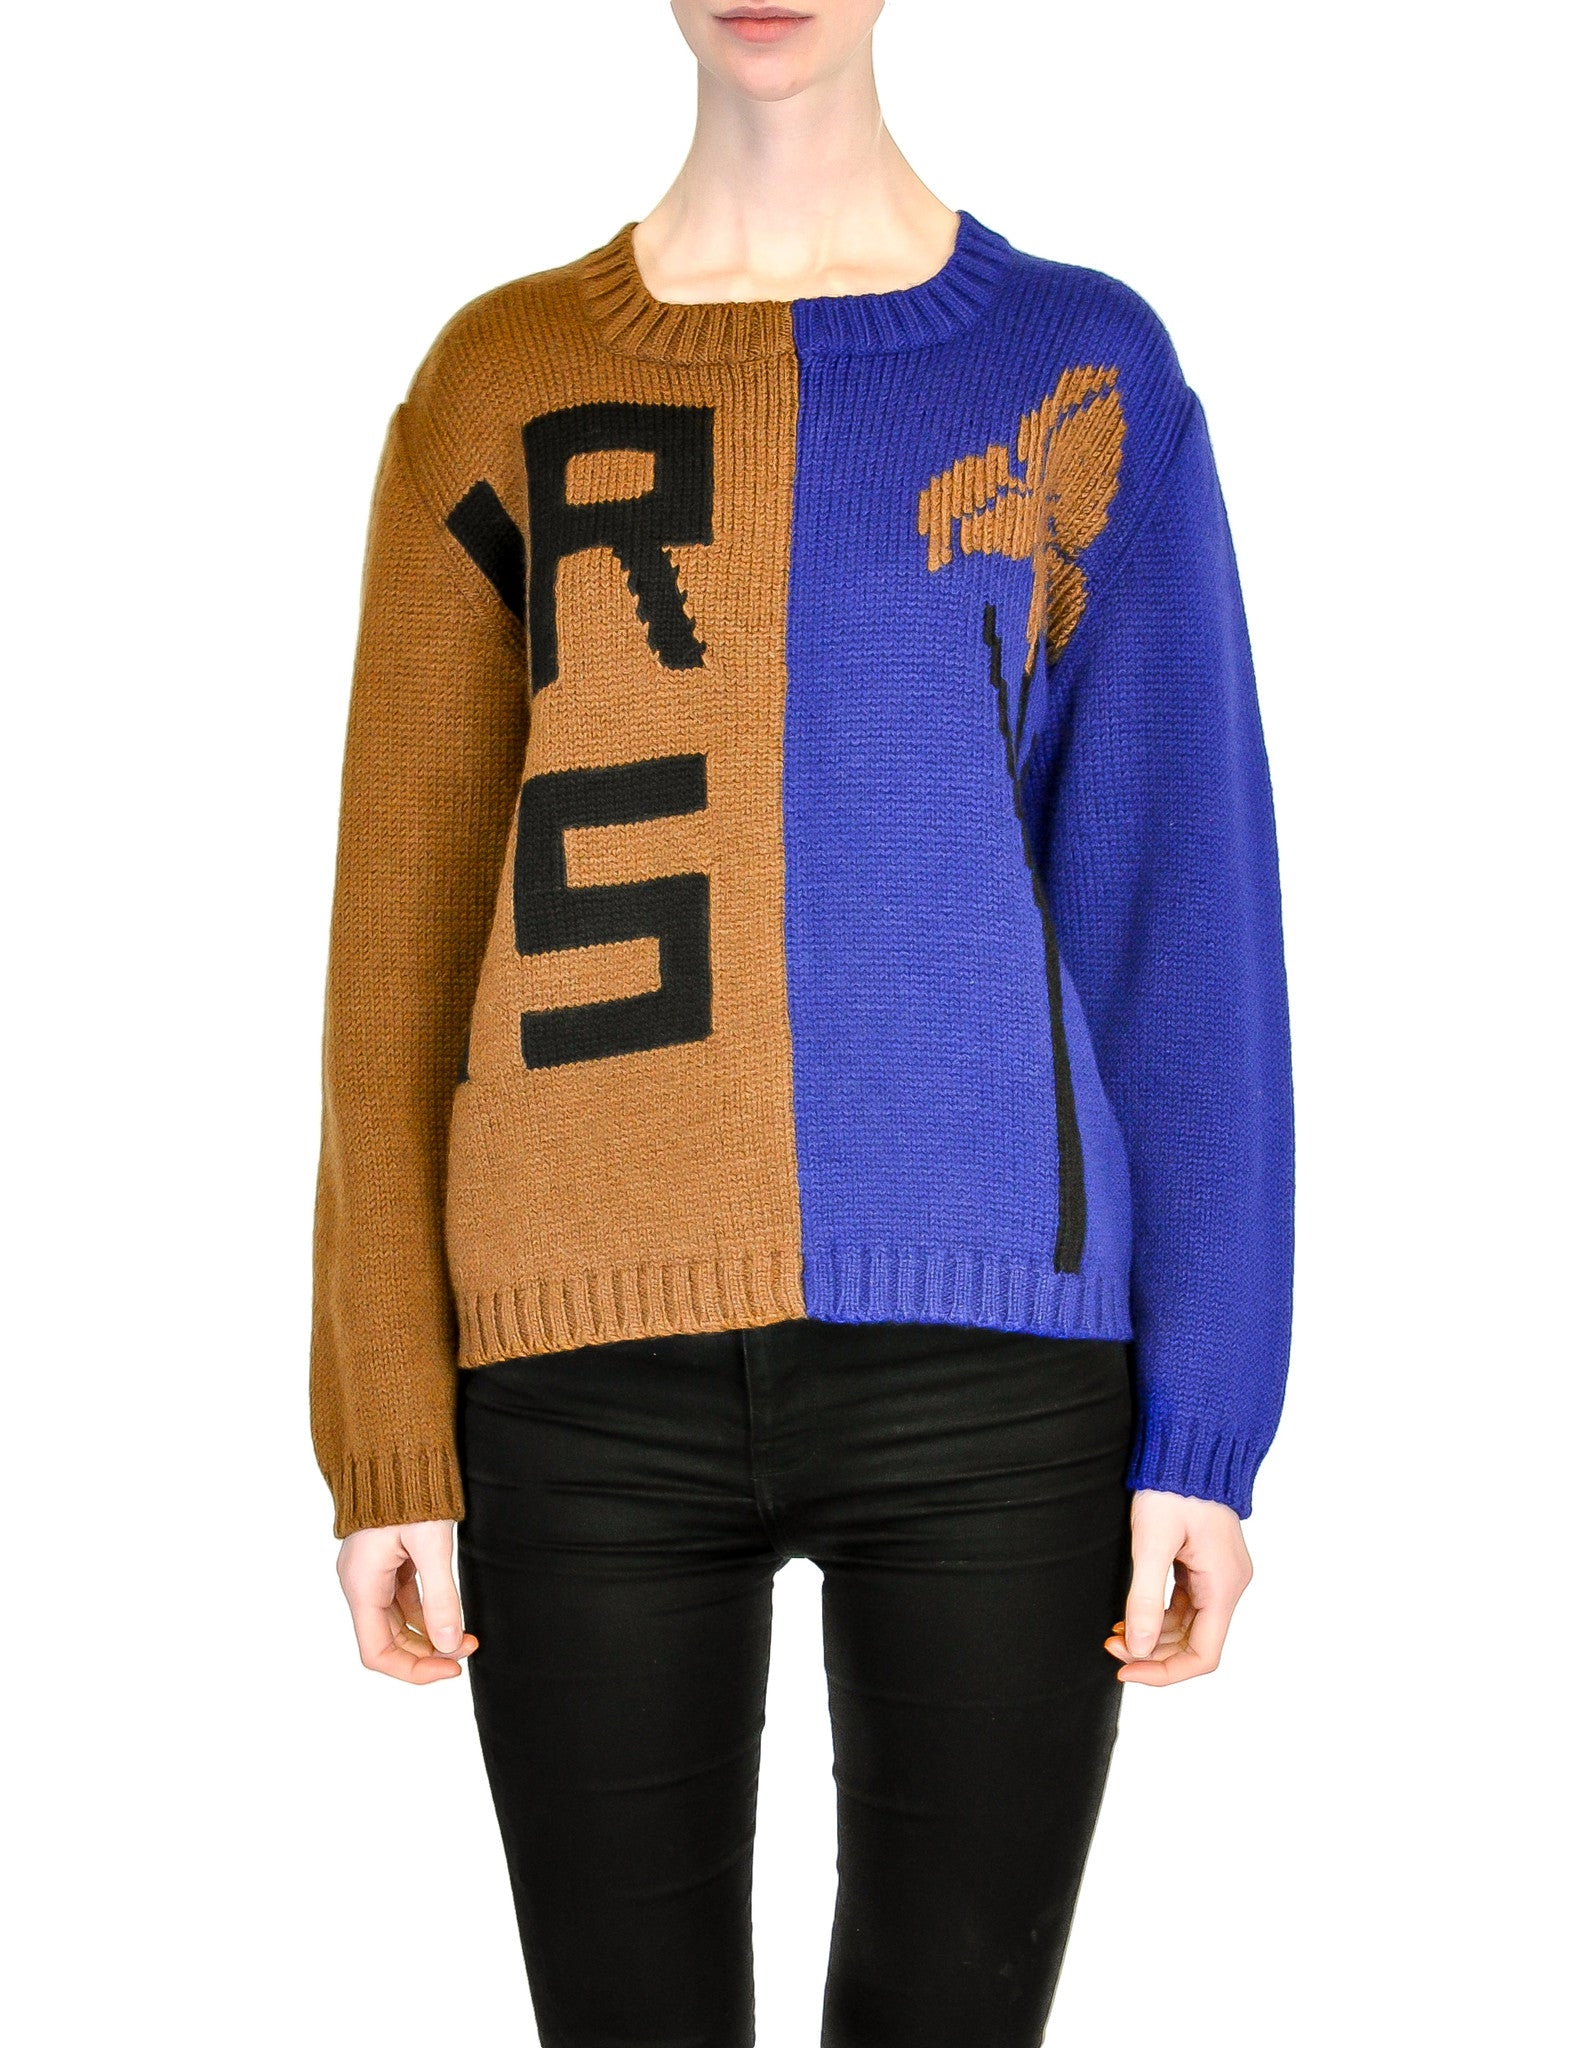 Anne Marie Beretta Vintage Blue & Brown Iris Sweater - Amarcord Vintage Fashion  - 1